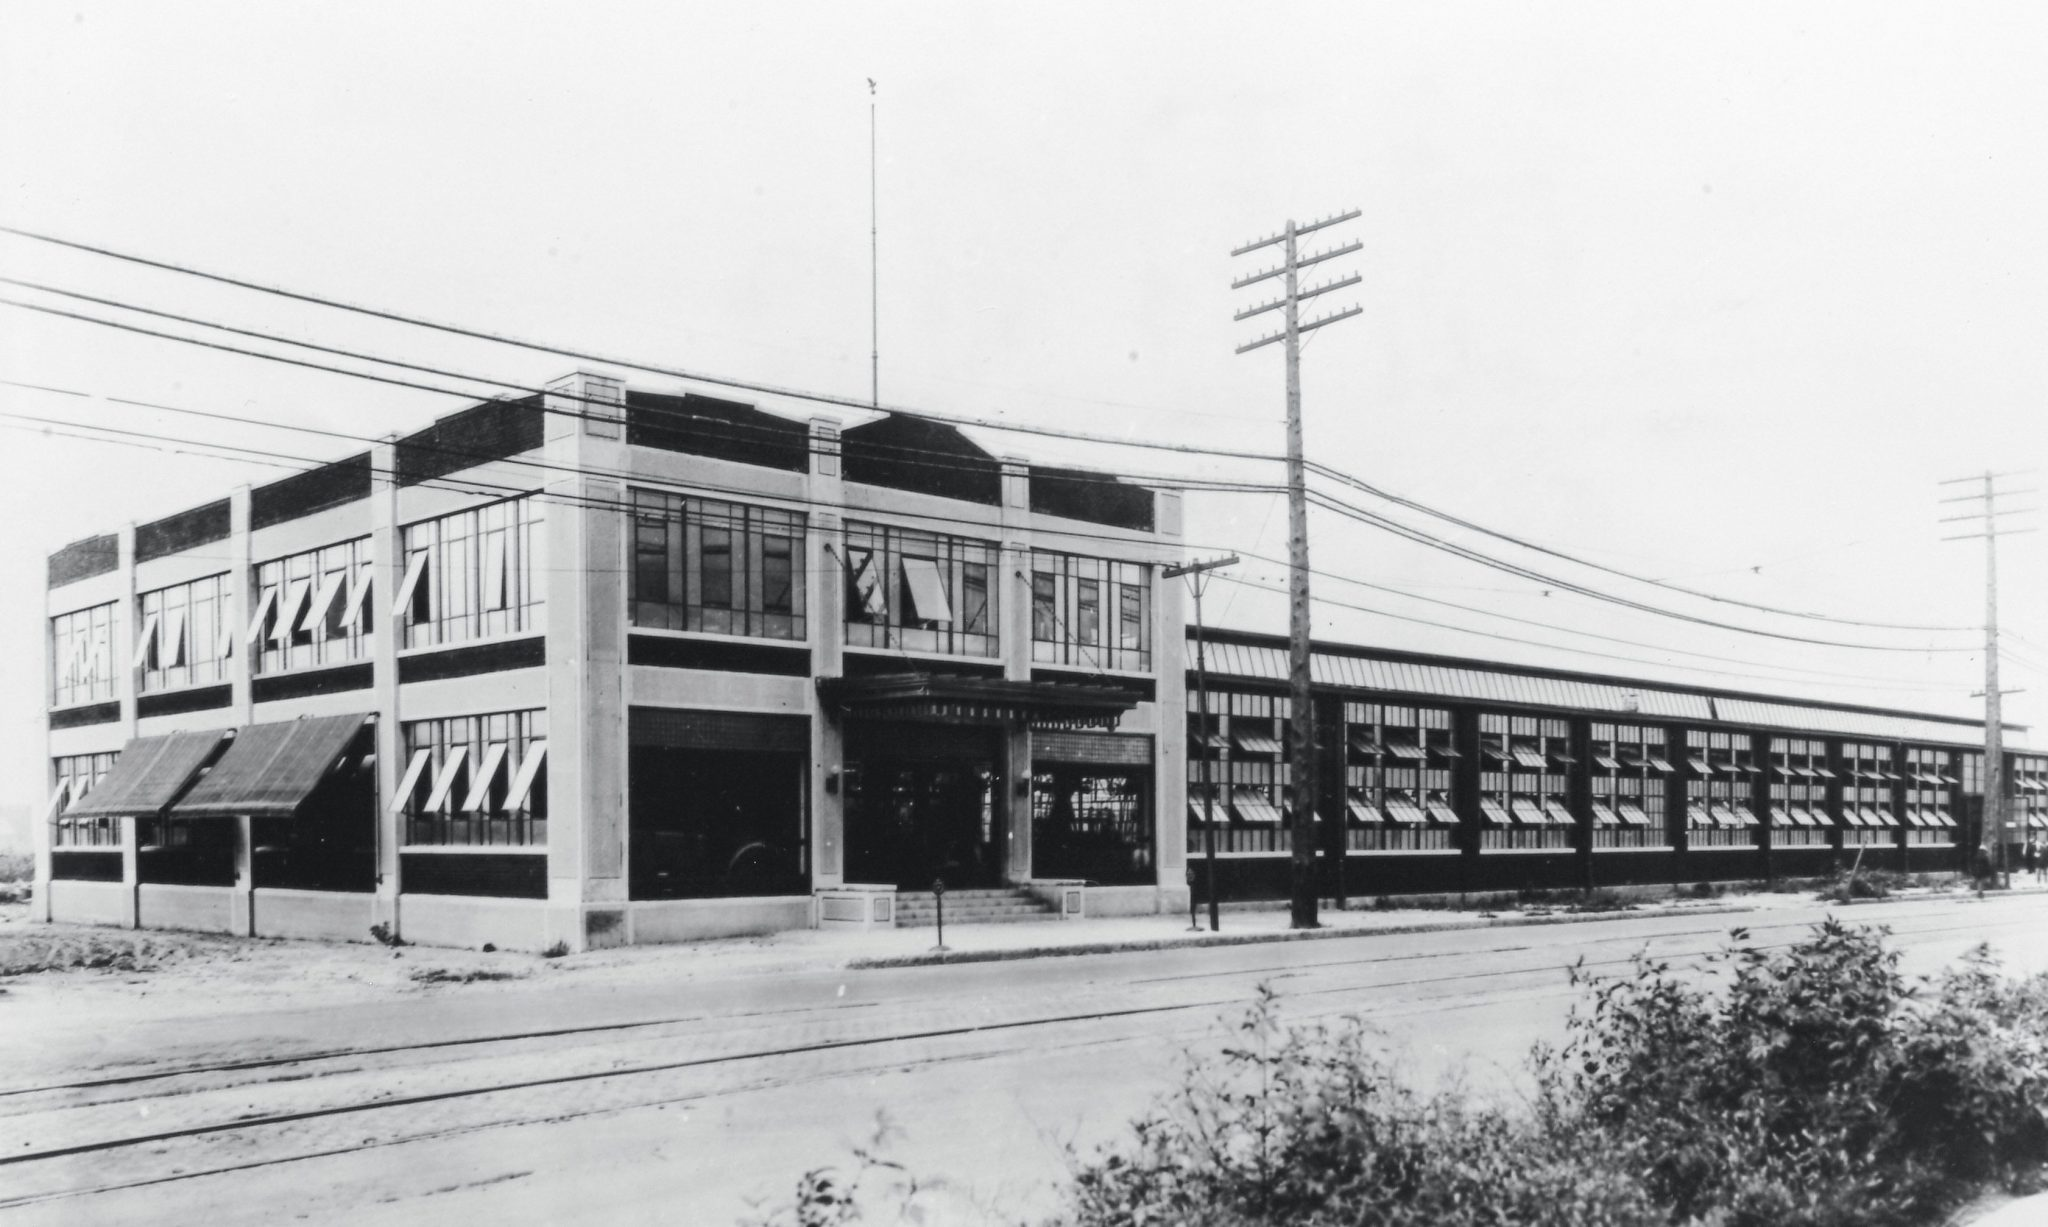 The new Duesenberg Automobiles and Motors Company was incorporated in Delaware in March 1920. Originally located in Newark, New Jersey, the company moved into a new facility in May 1921. The new headquarters were located at 1511 West Washington Street in Indianapolis, Indiana. The original structure had a one-story, 90 x 500 foot factory and a two-story complex for executive offices, administration, and engineering departments.